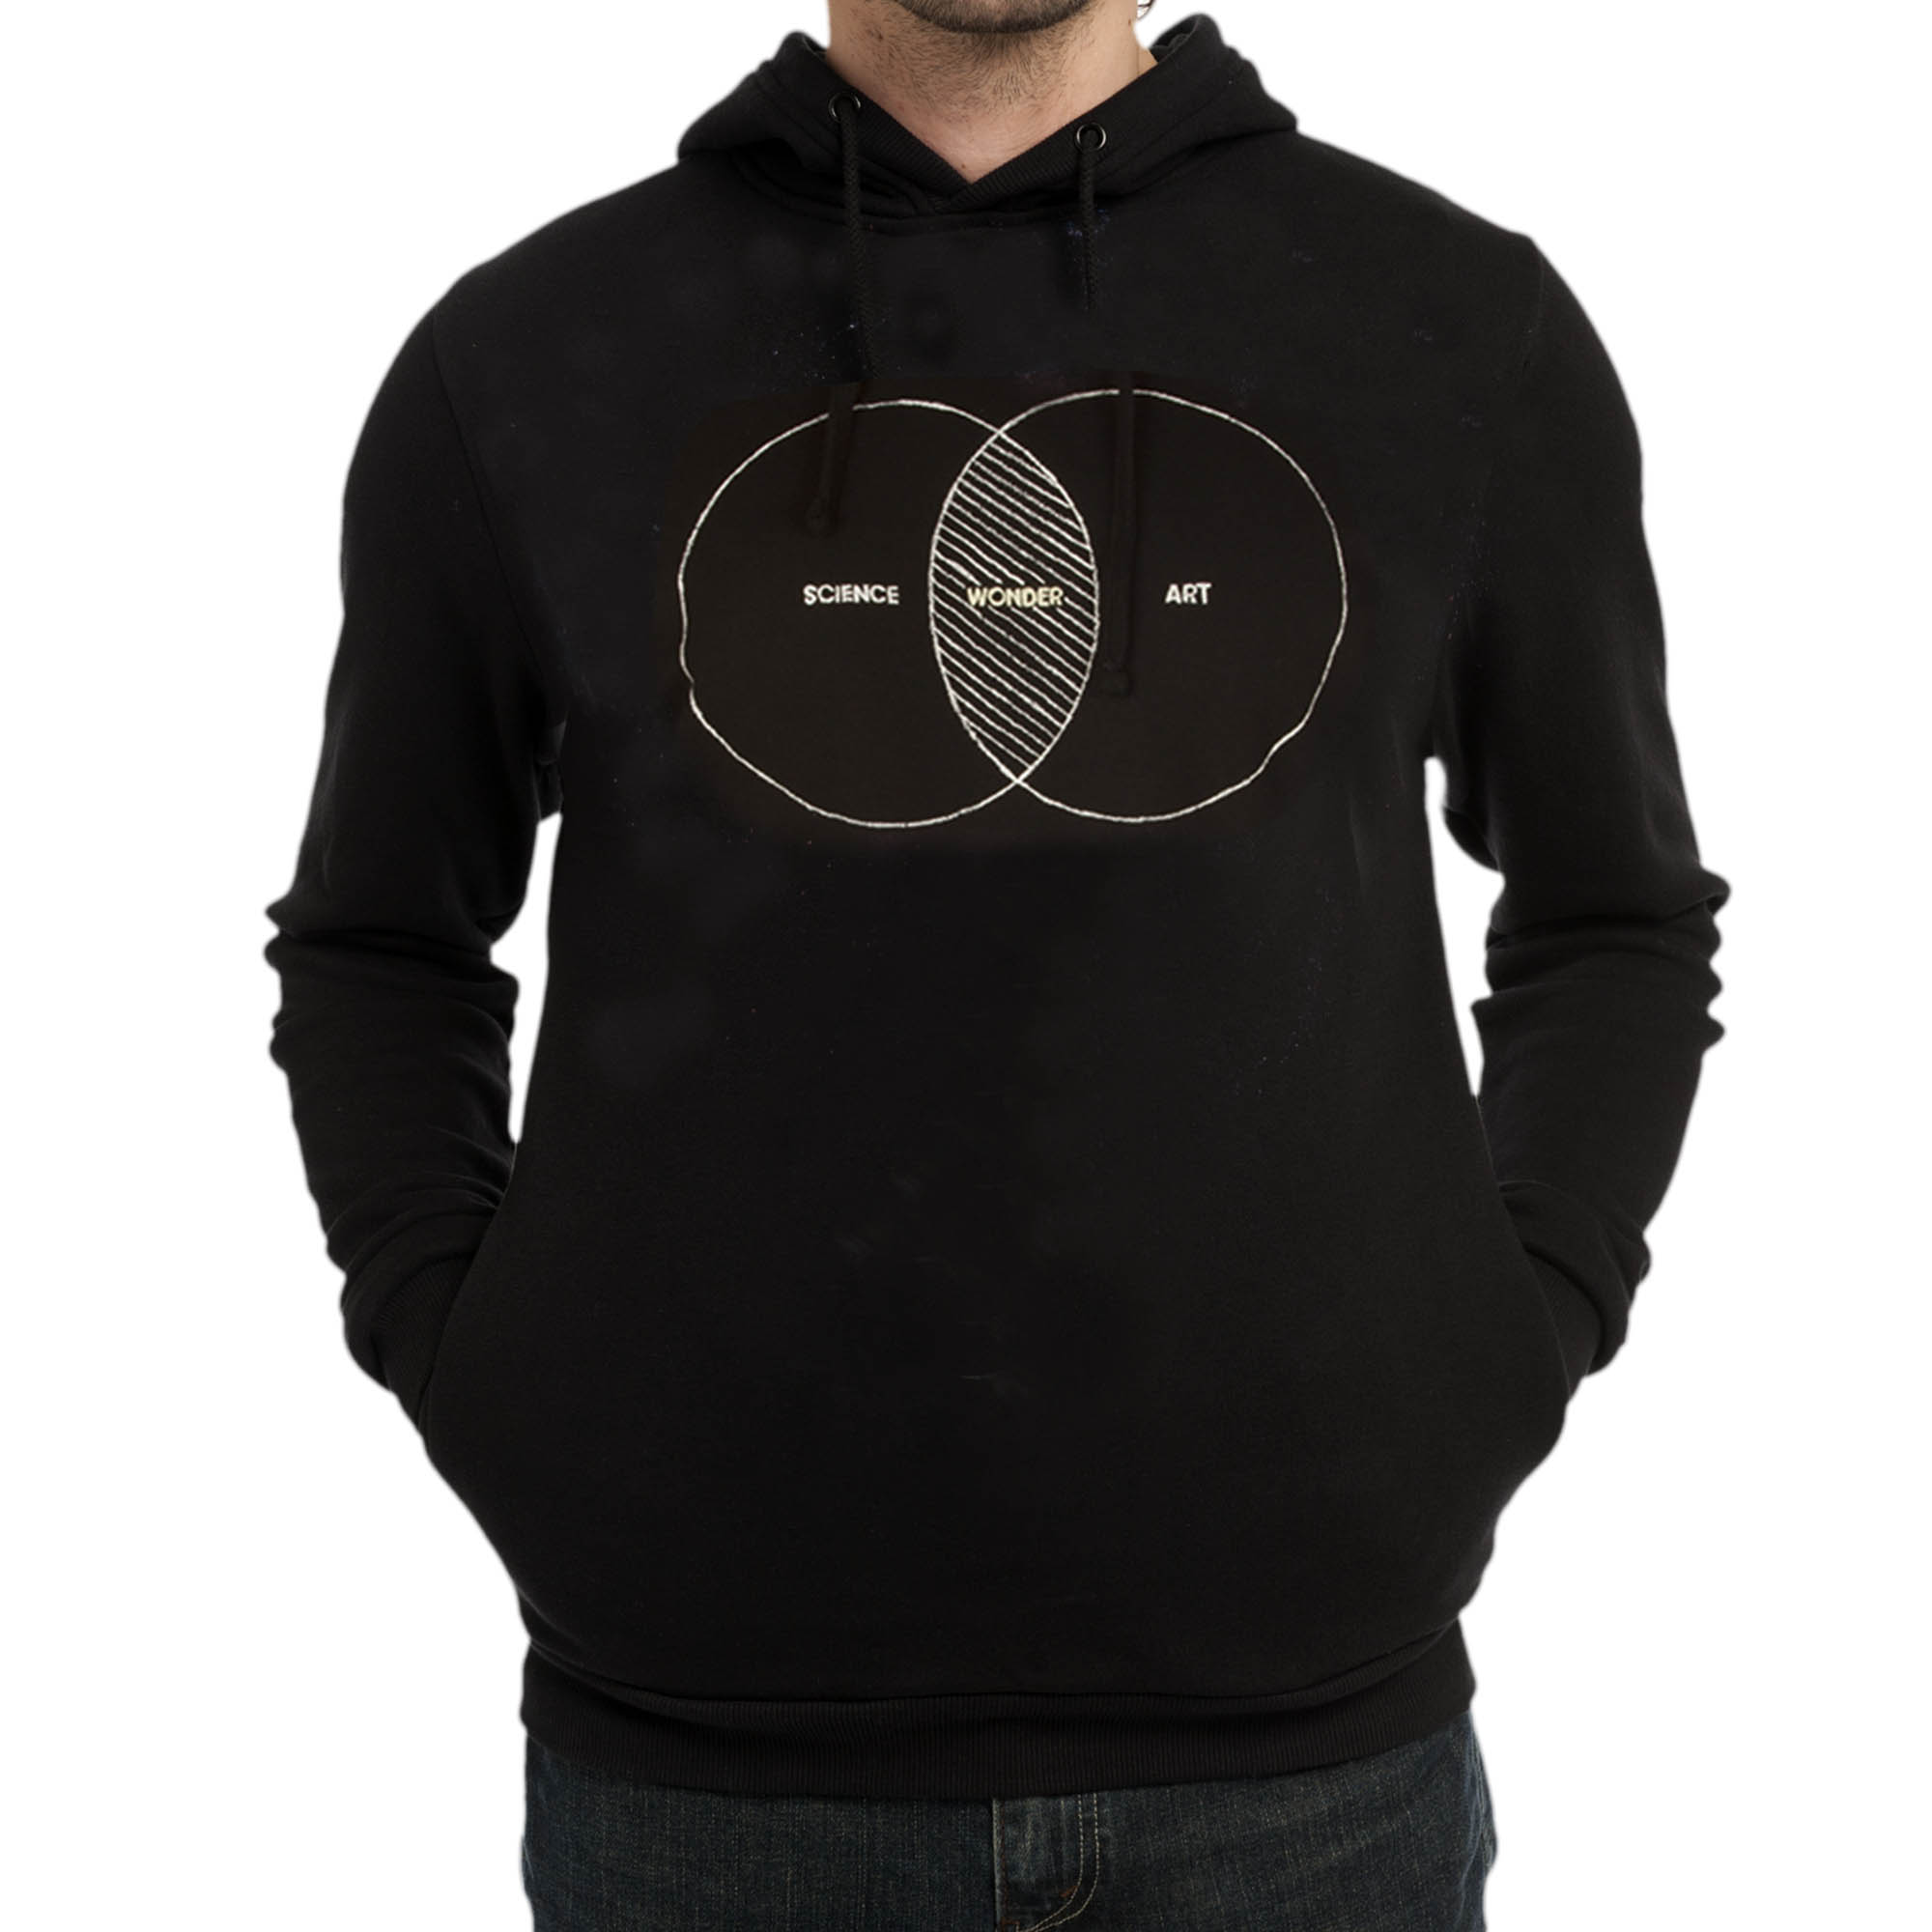 Science Art Wonder Pullover Hoodie